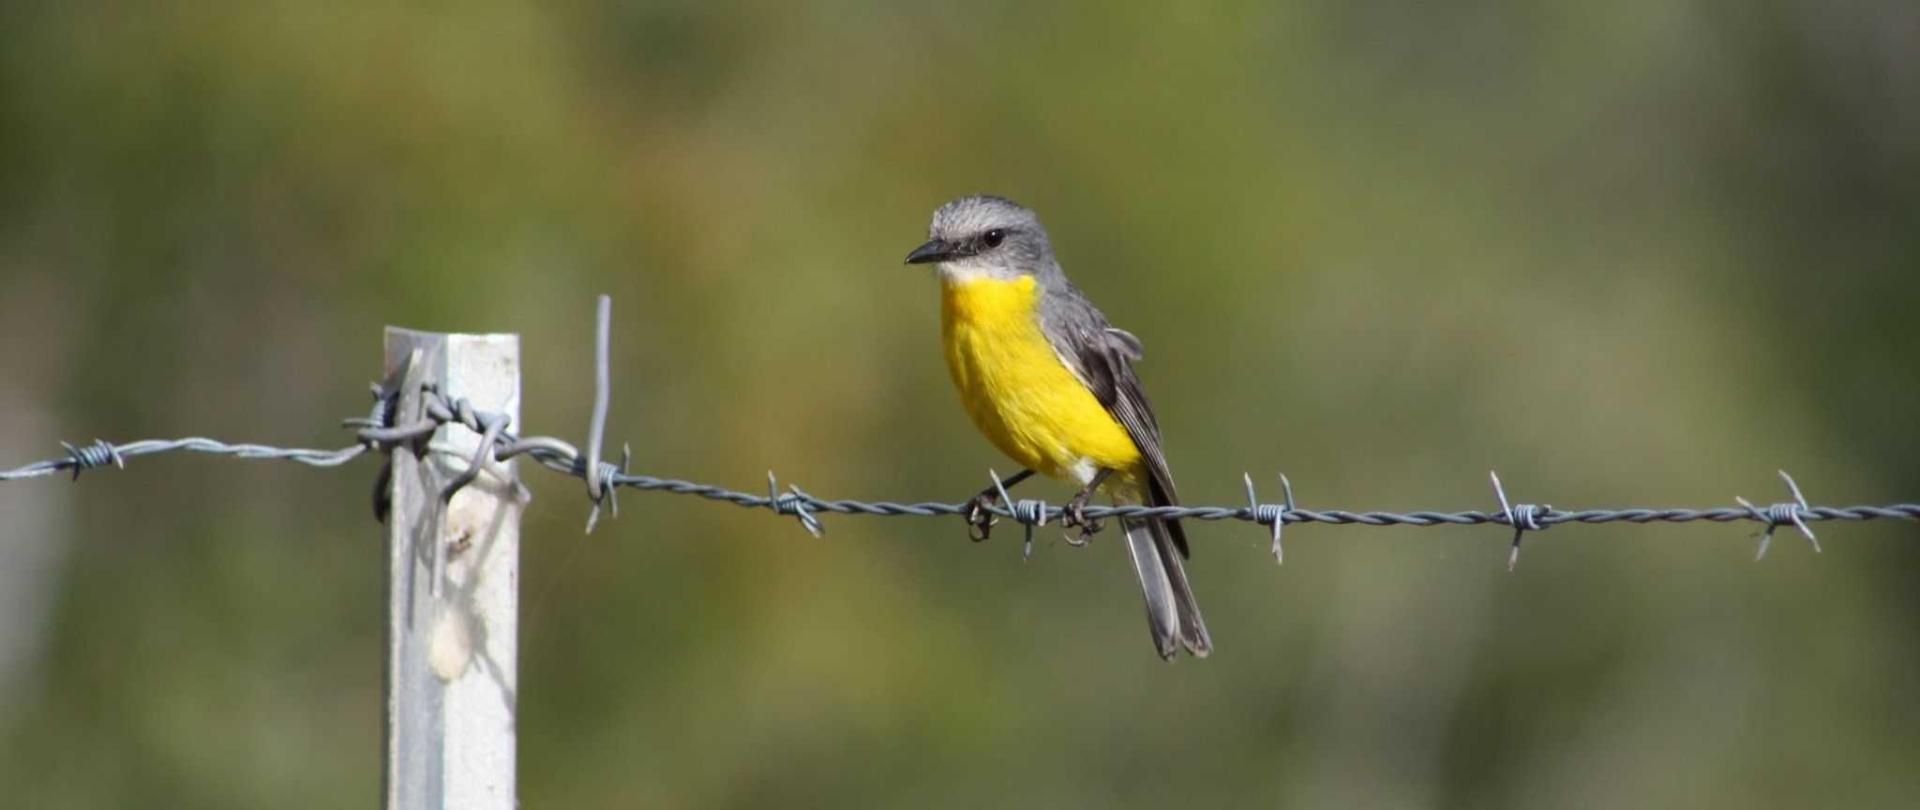 eastern_yellow_robin_larger.jpg